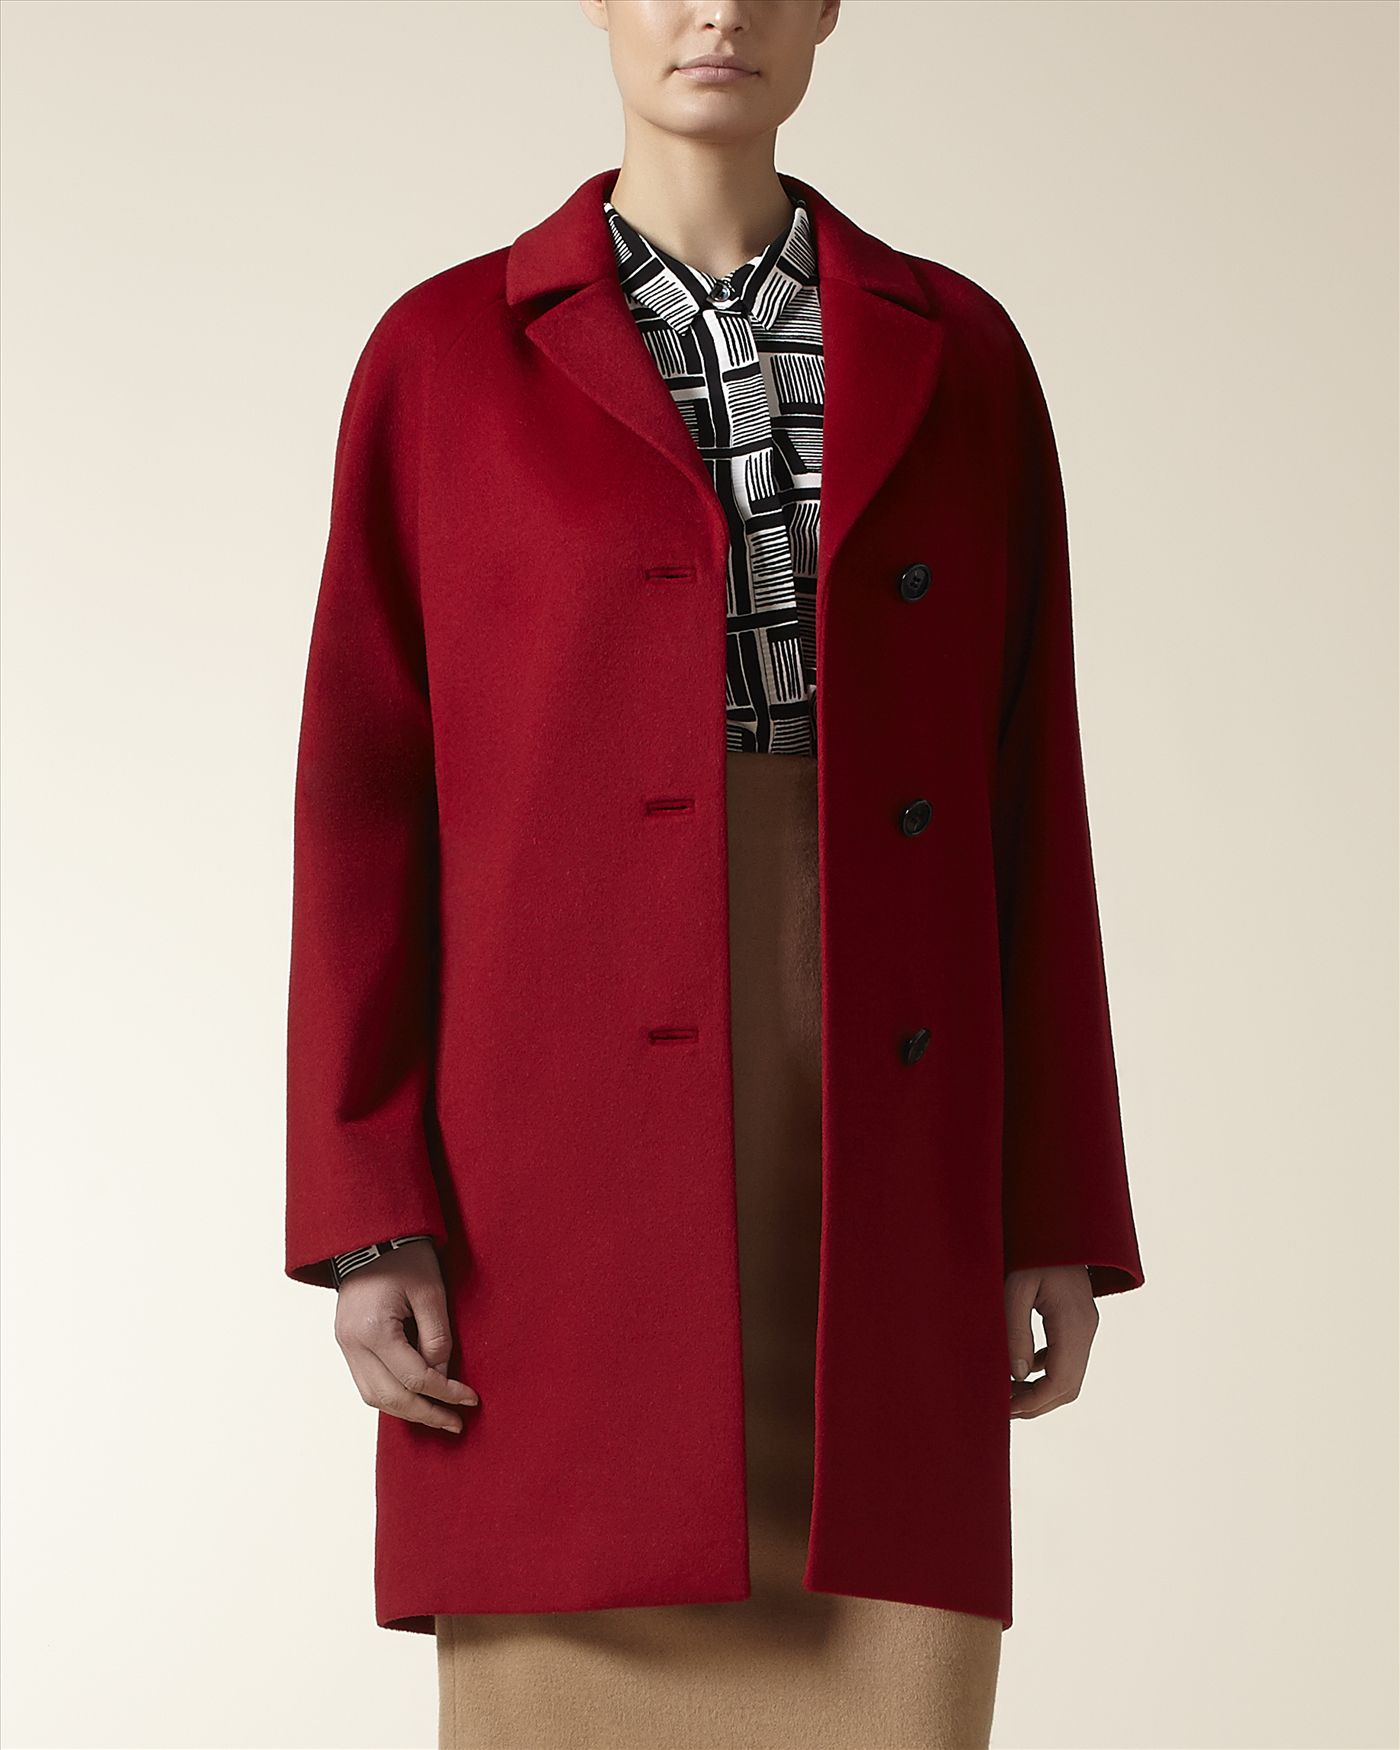 Jaeger Wool Three Button Coat in Red   Lyst